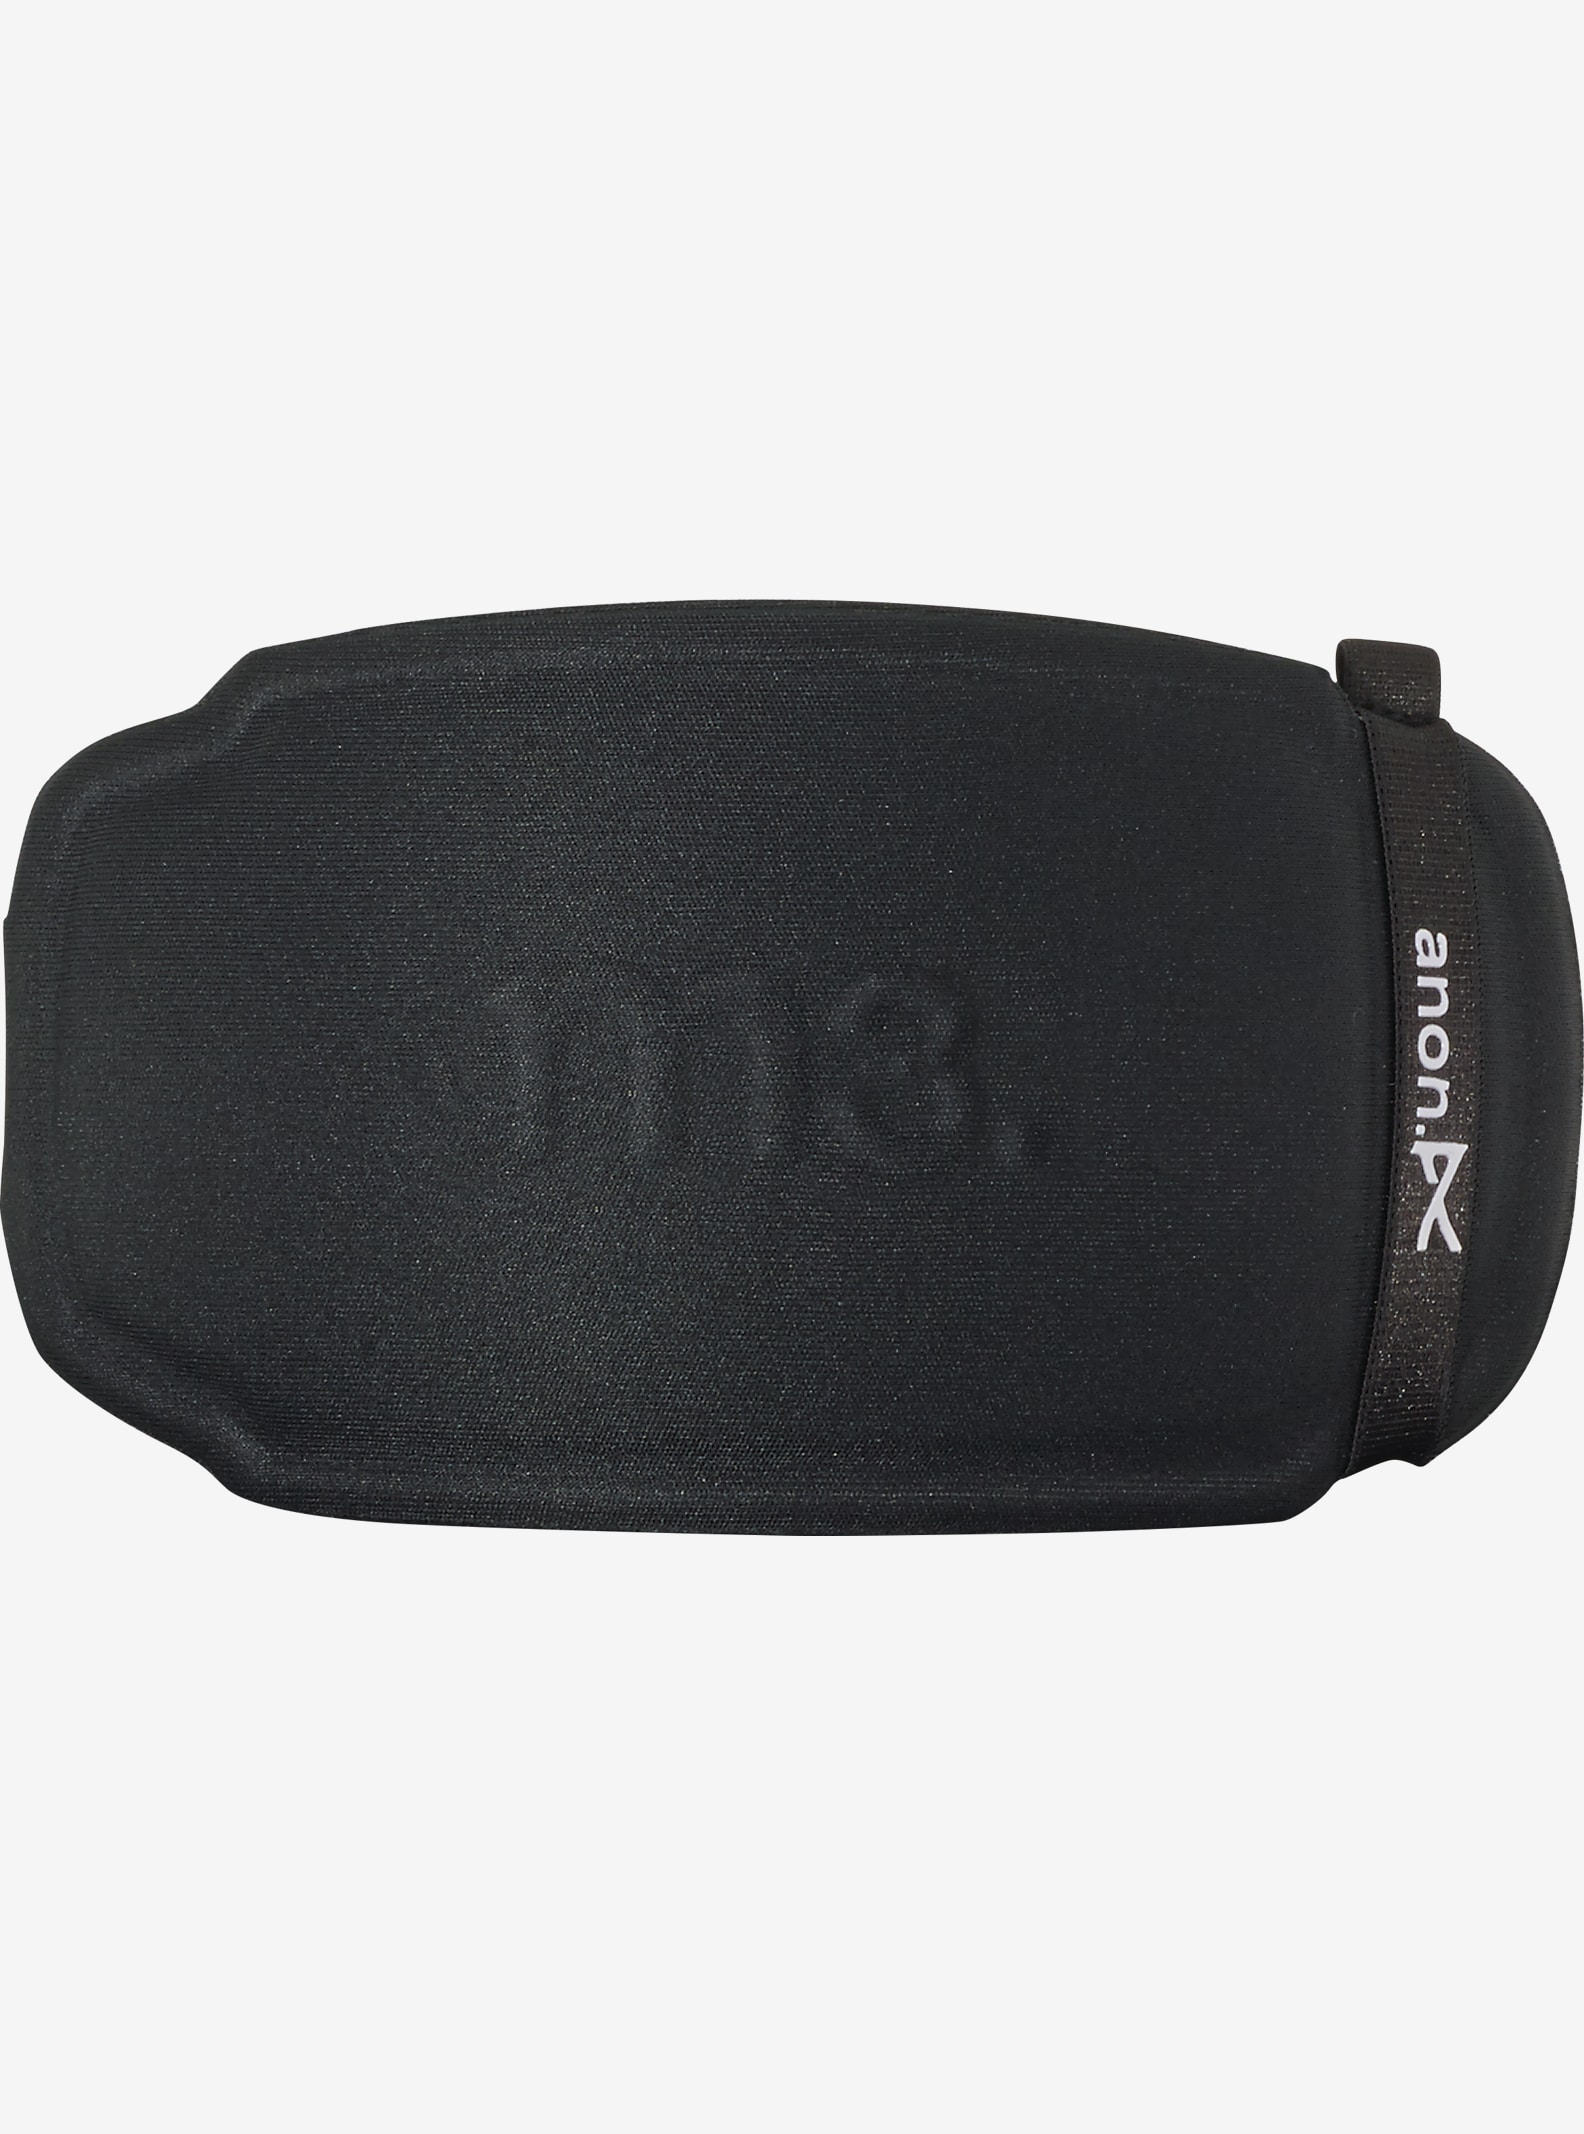 anon. M3 Lens Case shown in Black